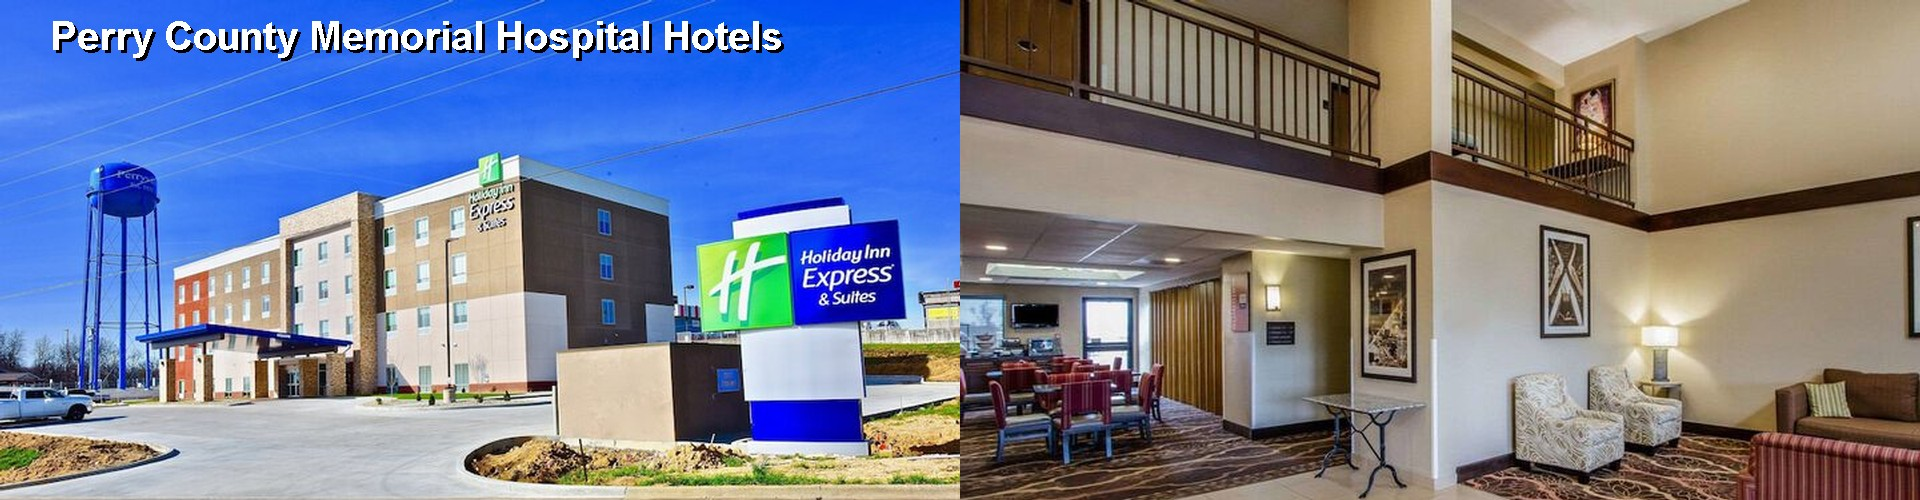 5 Best Hotels near Perry County Memorial Hospital